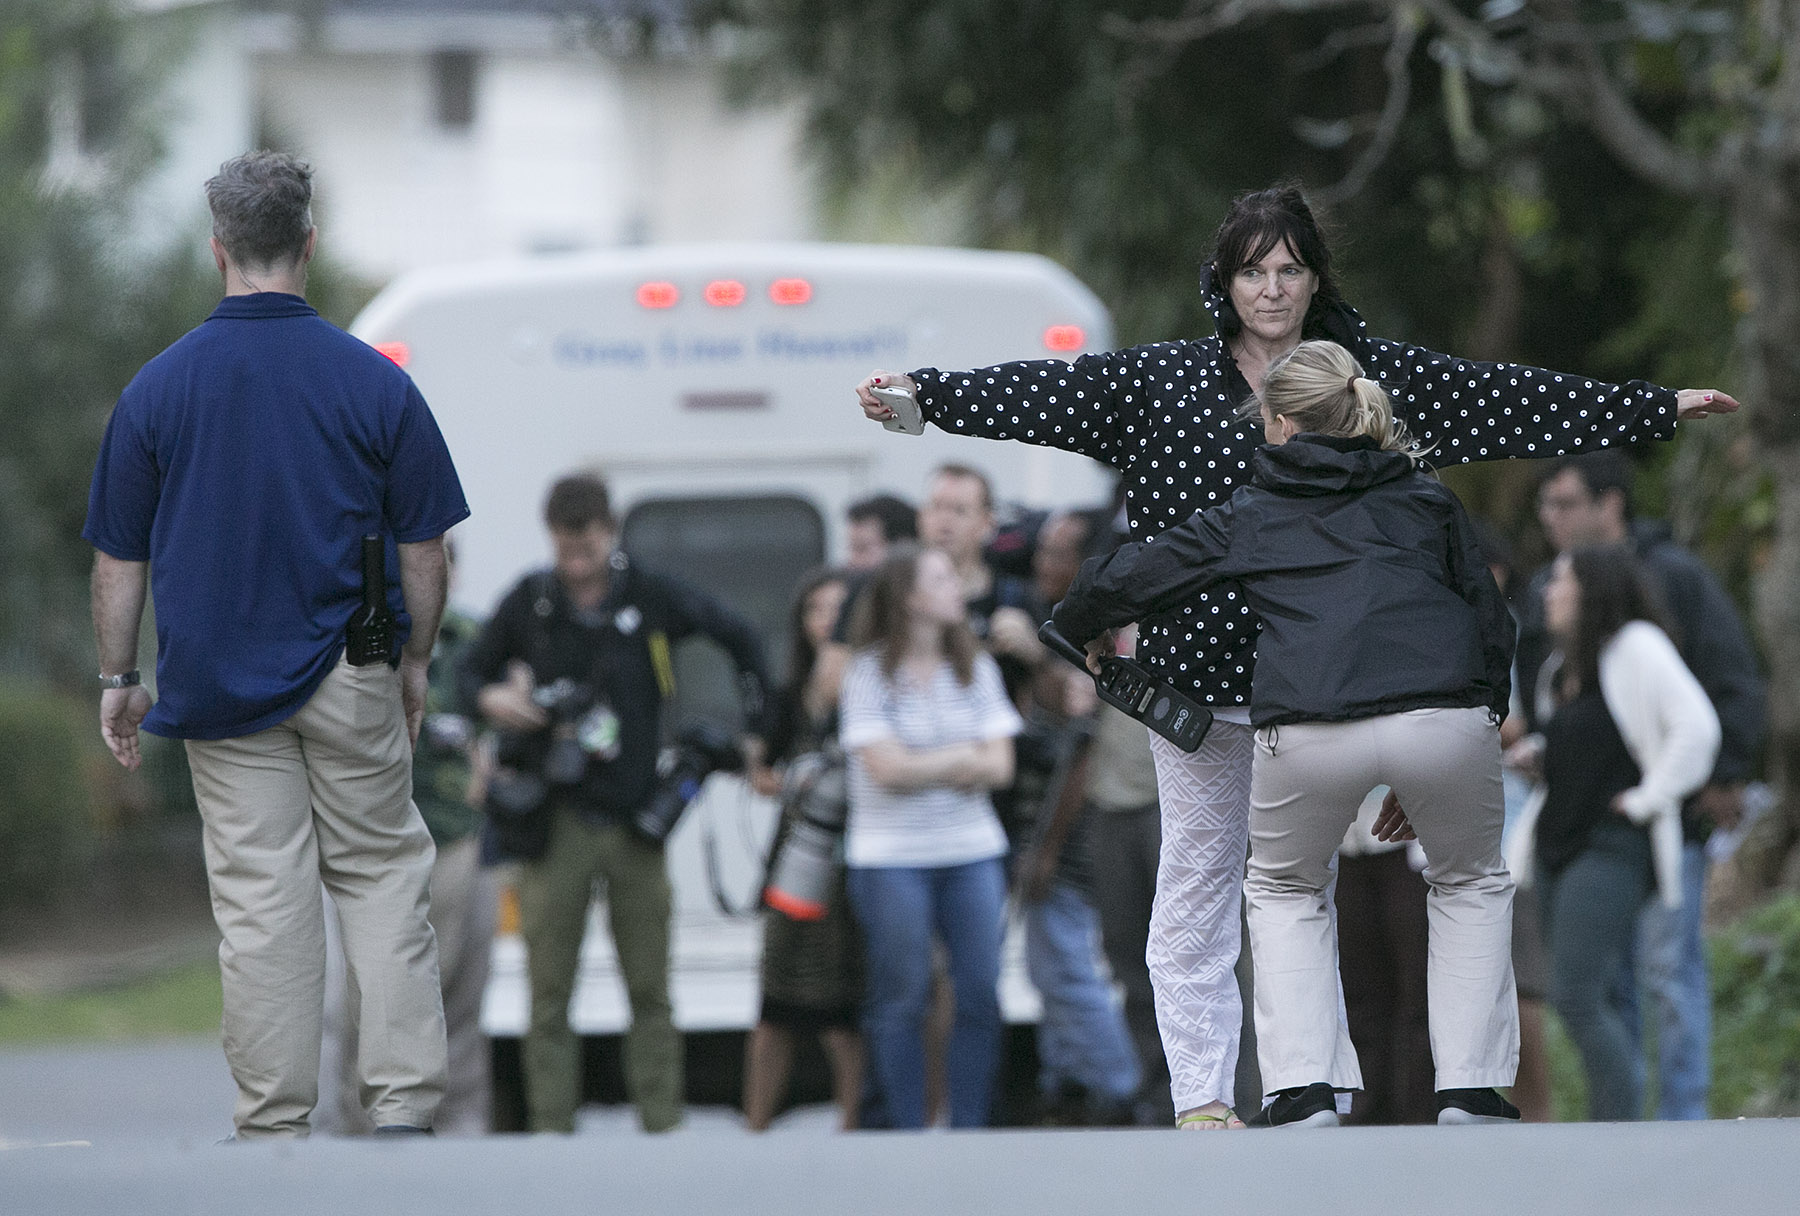 <p>Mid Pacific Country Club is one of the few golf courses Obama frequents on Oahu where the public can catch a glimpse of the president. A Secret Service agent scans a woman near the presidentialmotorcade in December 2015.</p>